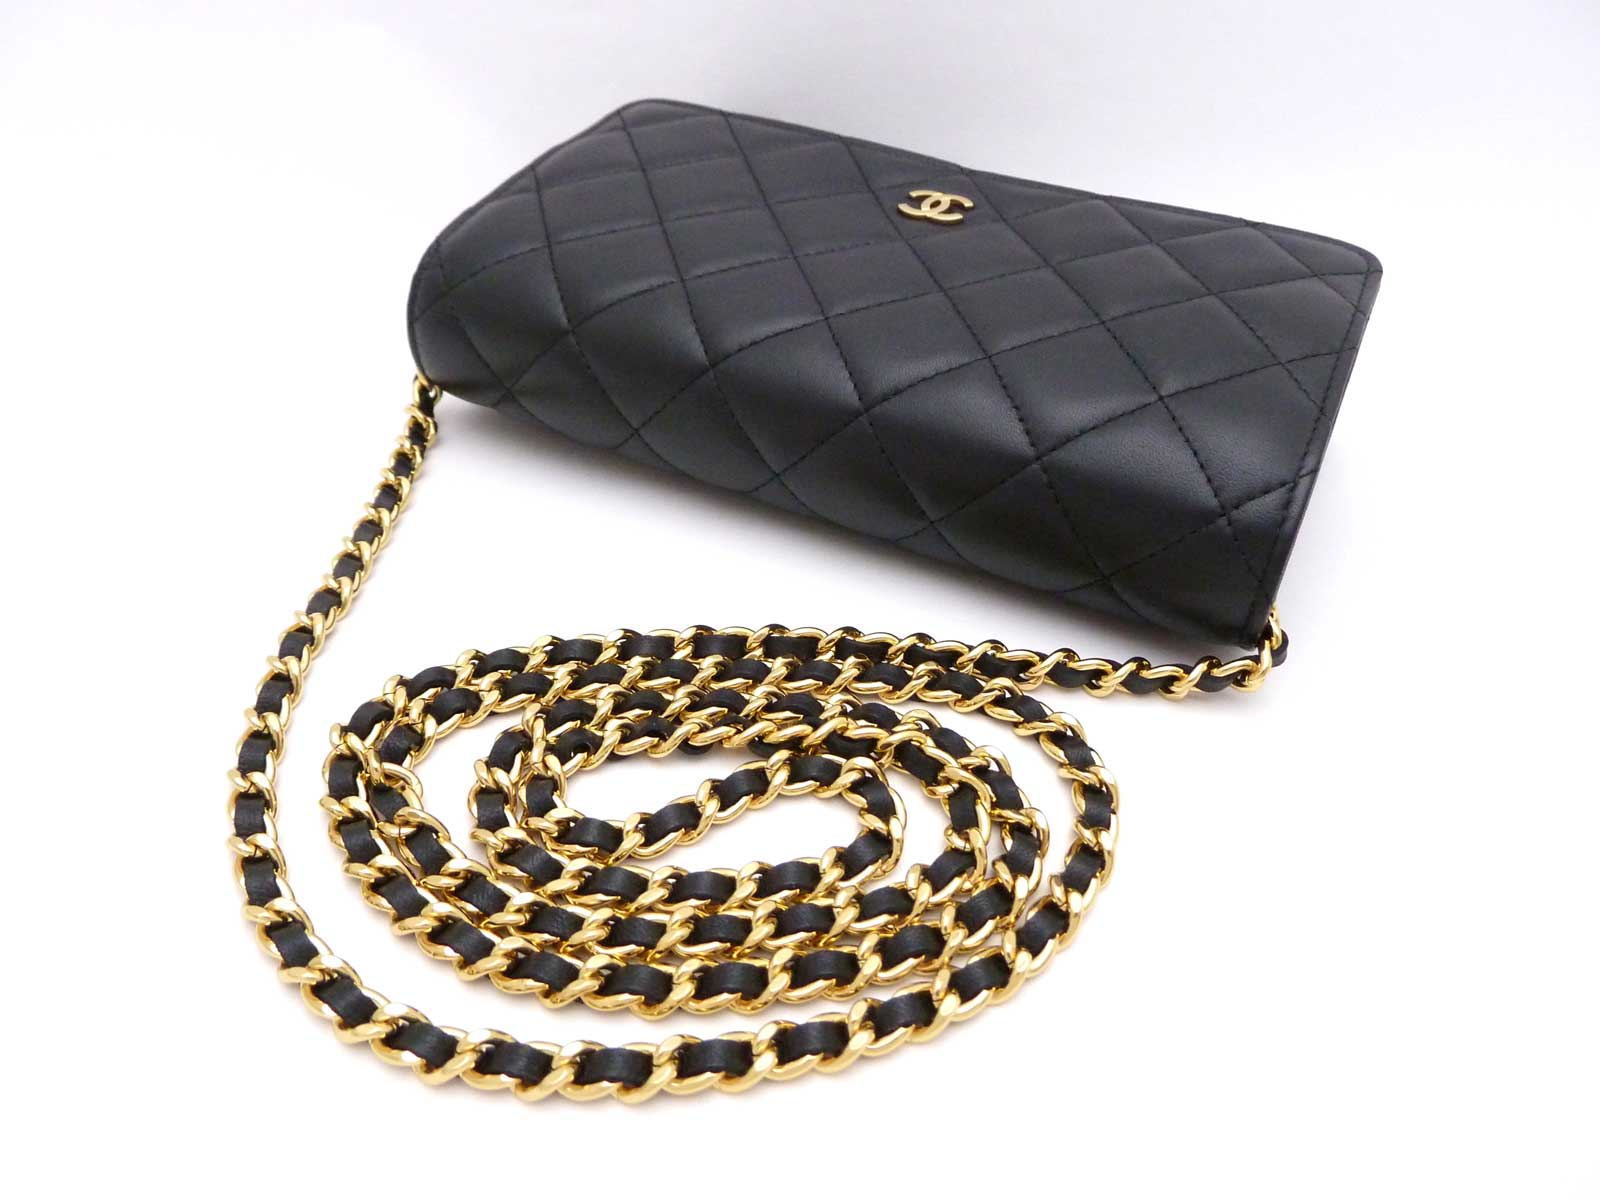 acca9ca7f595 Auth CHANEL Classic Matelasse Wallet On Chain Black Lambskin *MINT* -  e24896 | eBay